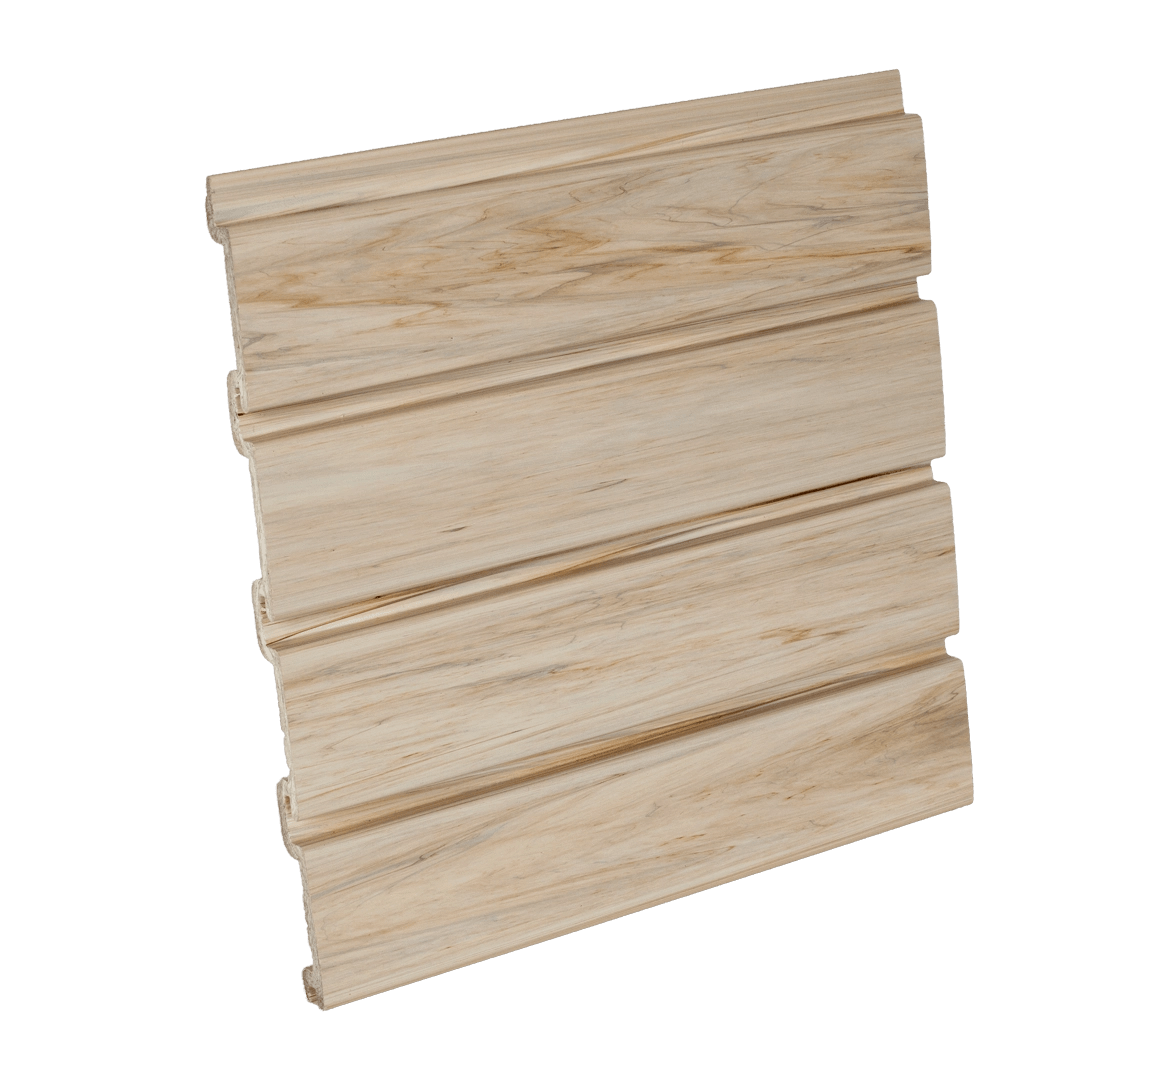 Vertical Wood Slat Wall Pvc Panels